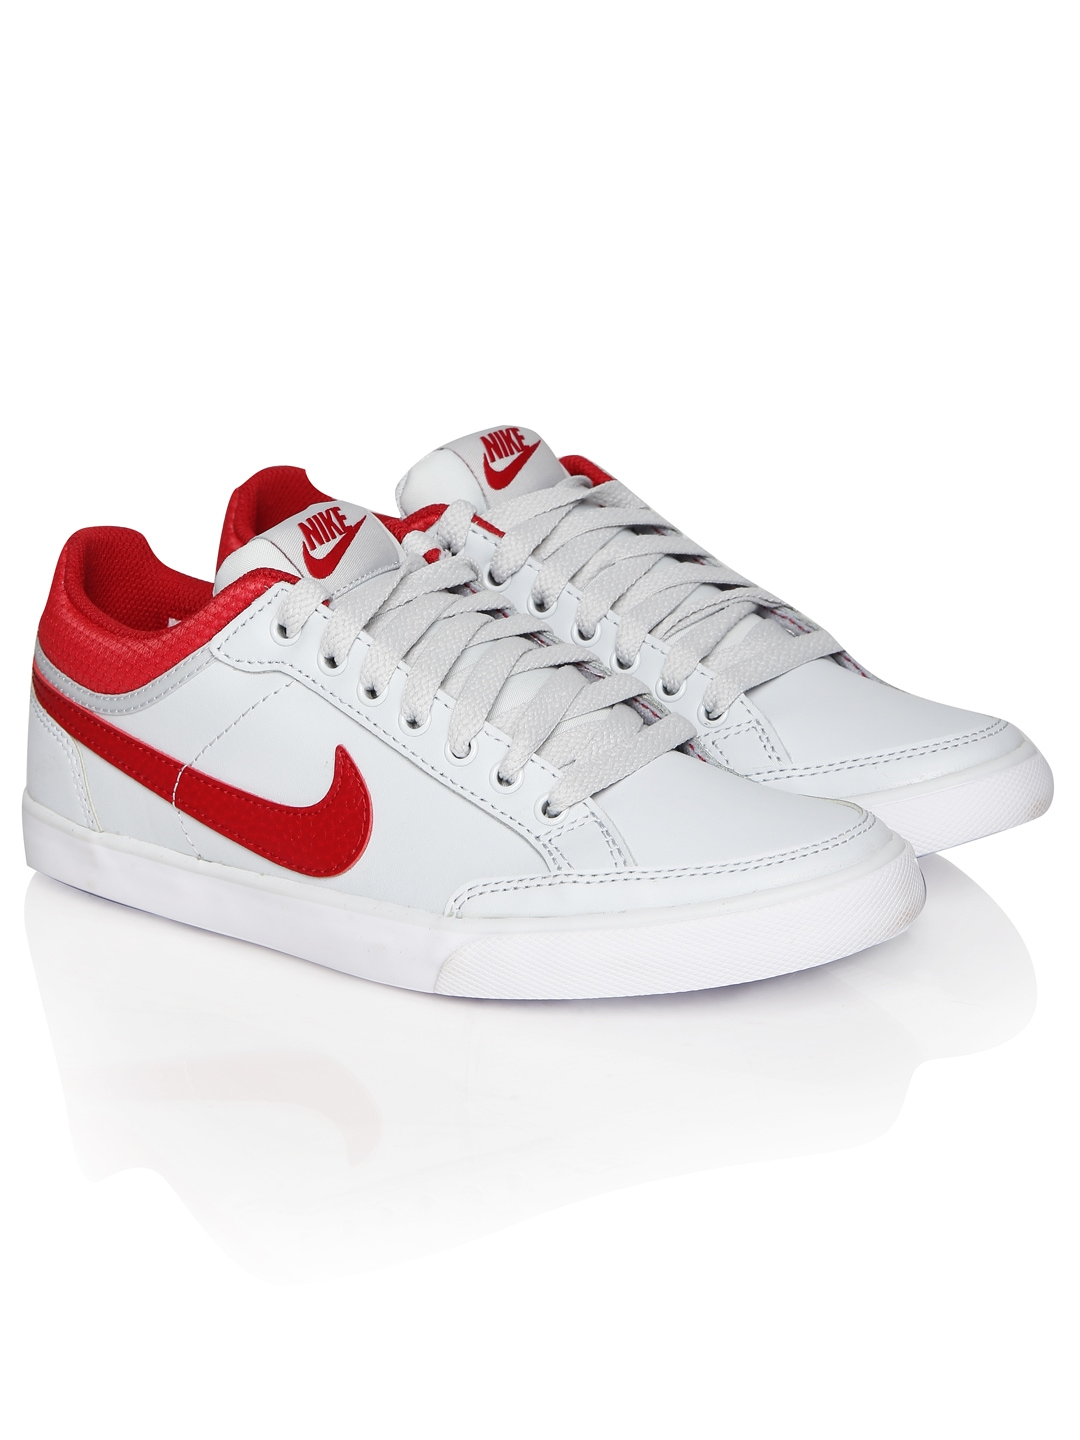 myntra nike white iii low lthr leather casual